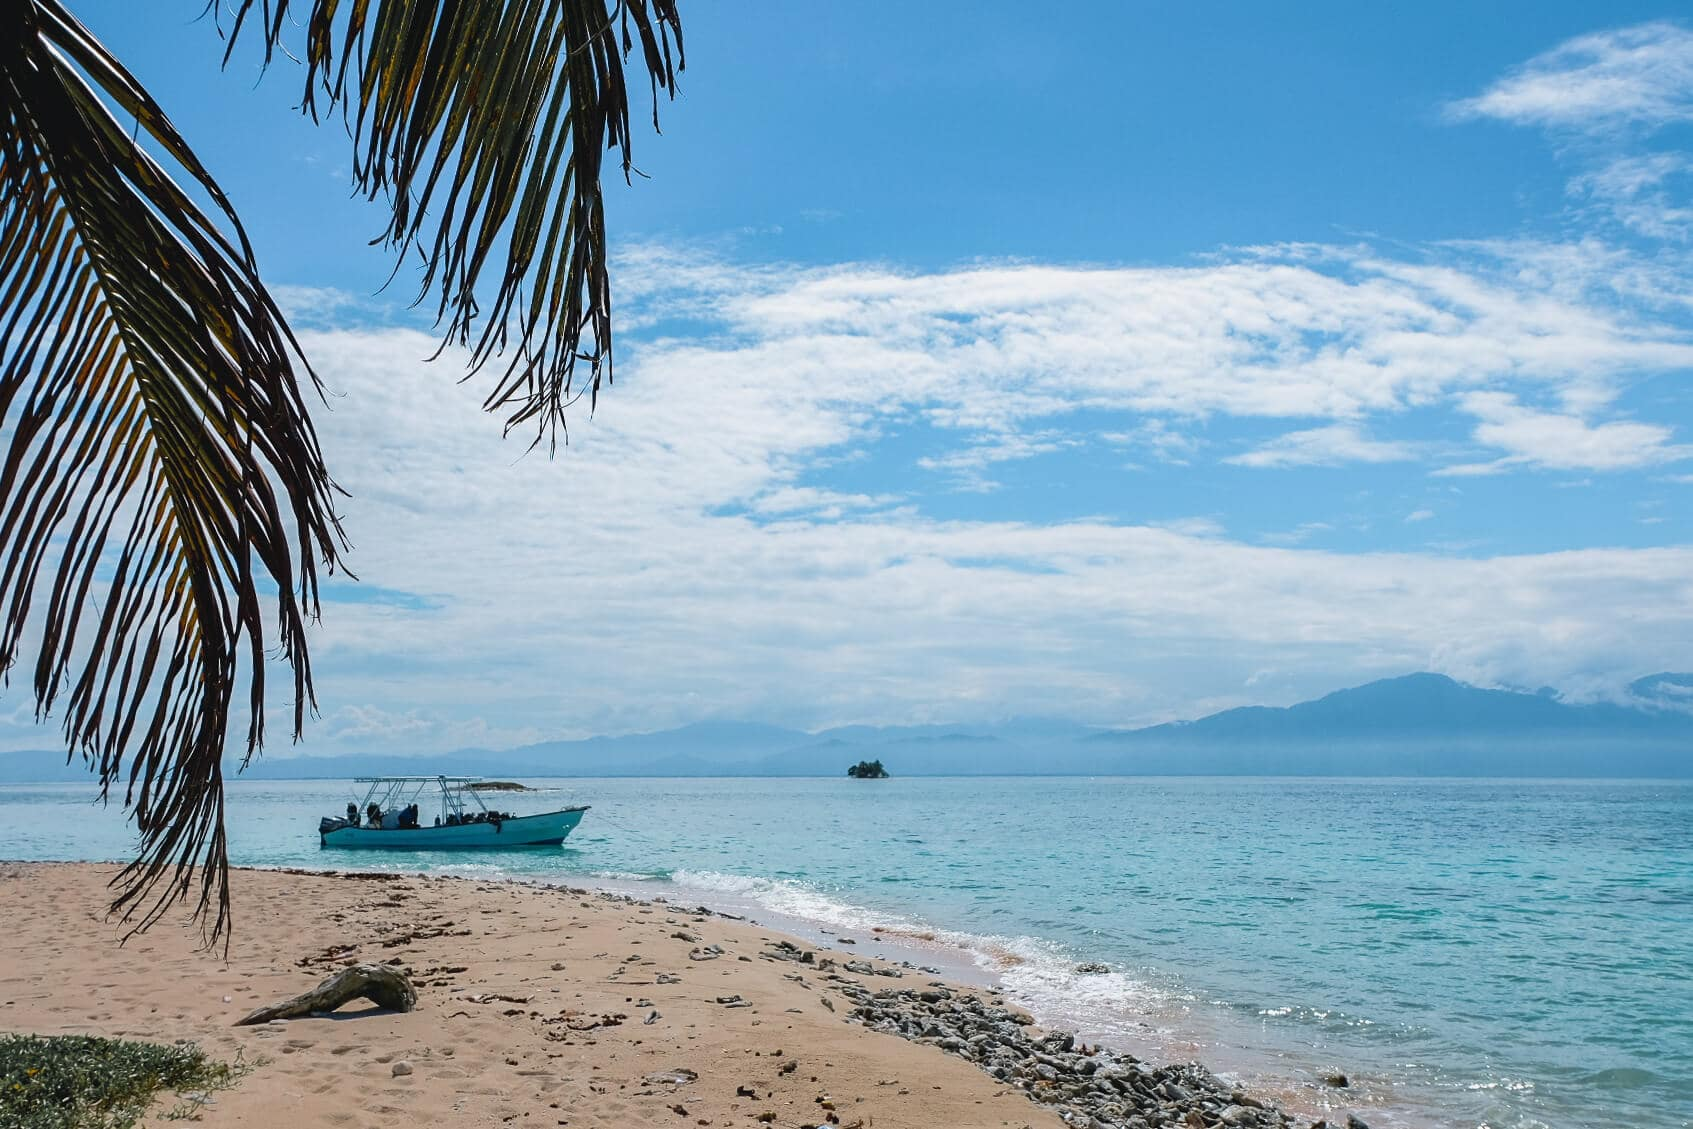 A beach in Cayos Cochinos with the mountains of Northern Honduras